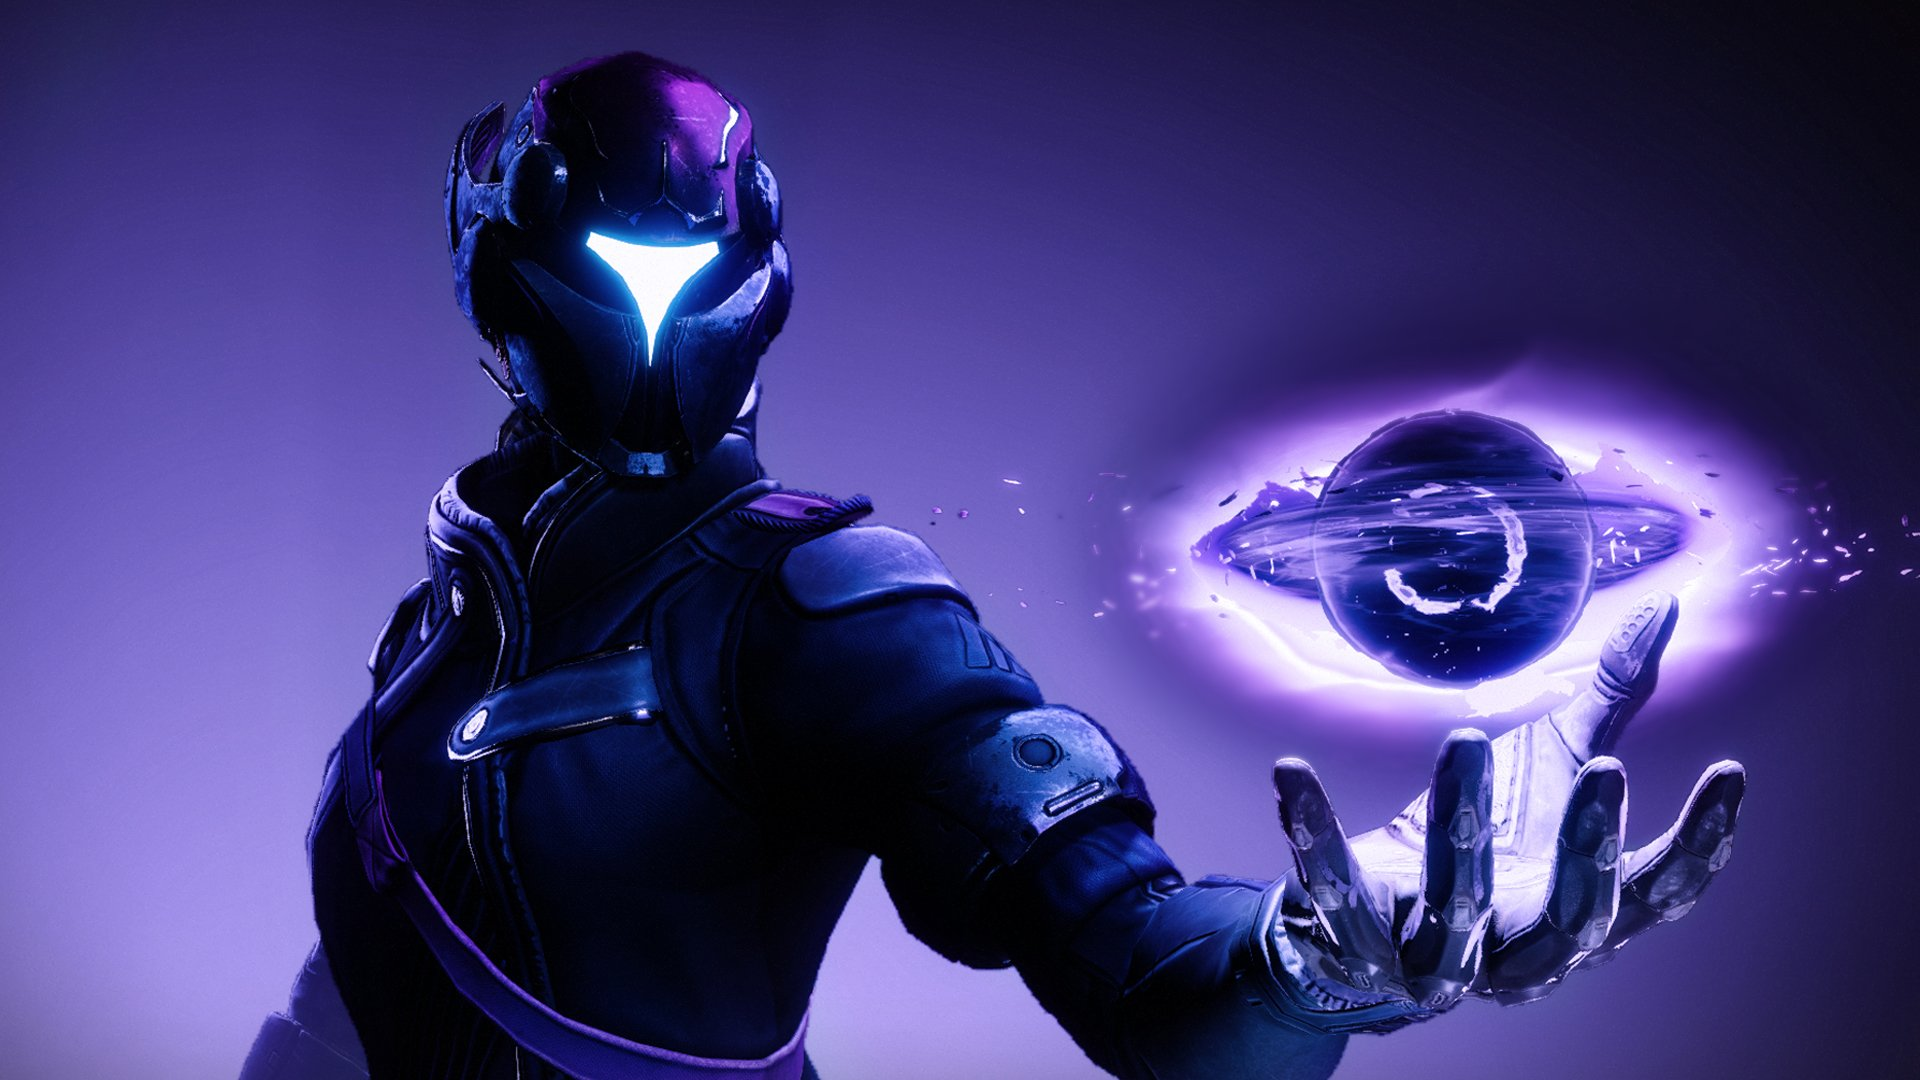 Warlock Void 3.0 subclass preview from Destiny 2: The Witch Queen